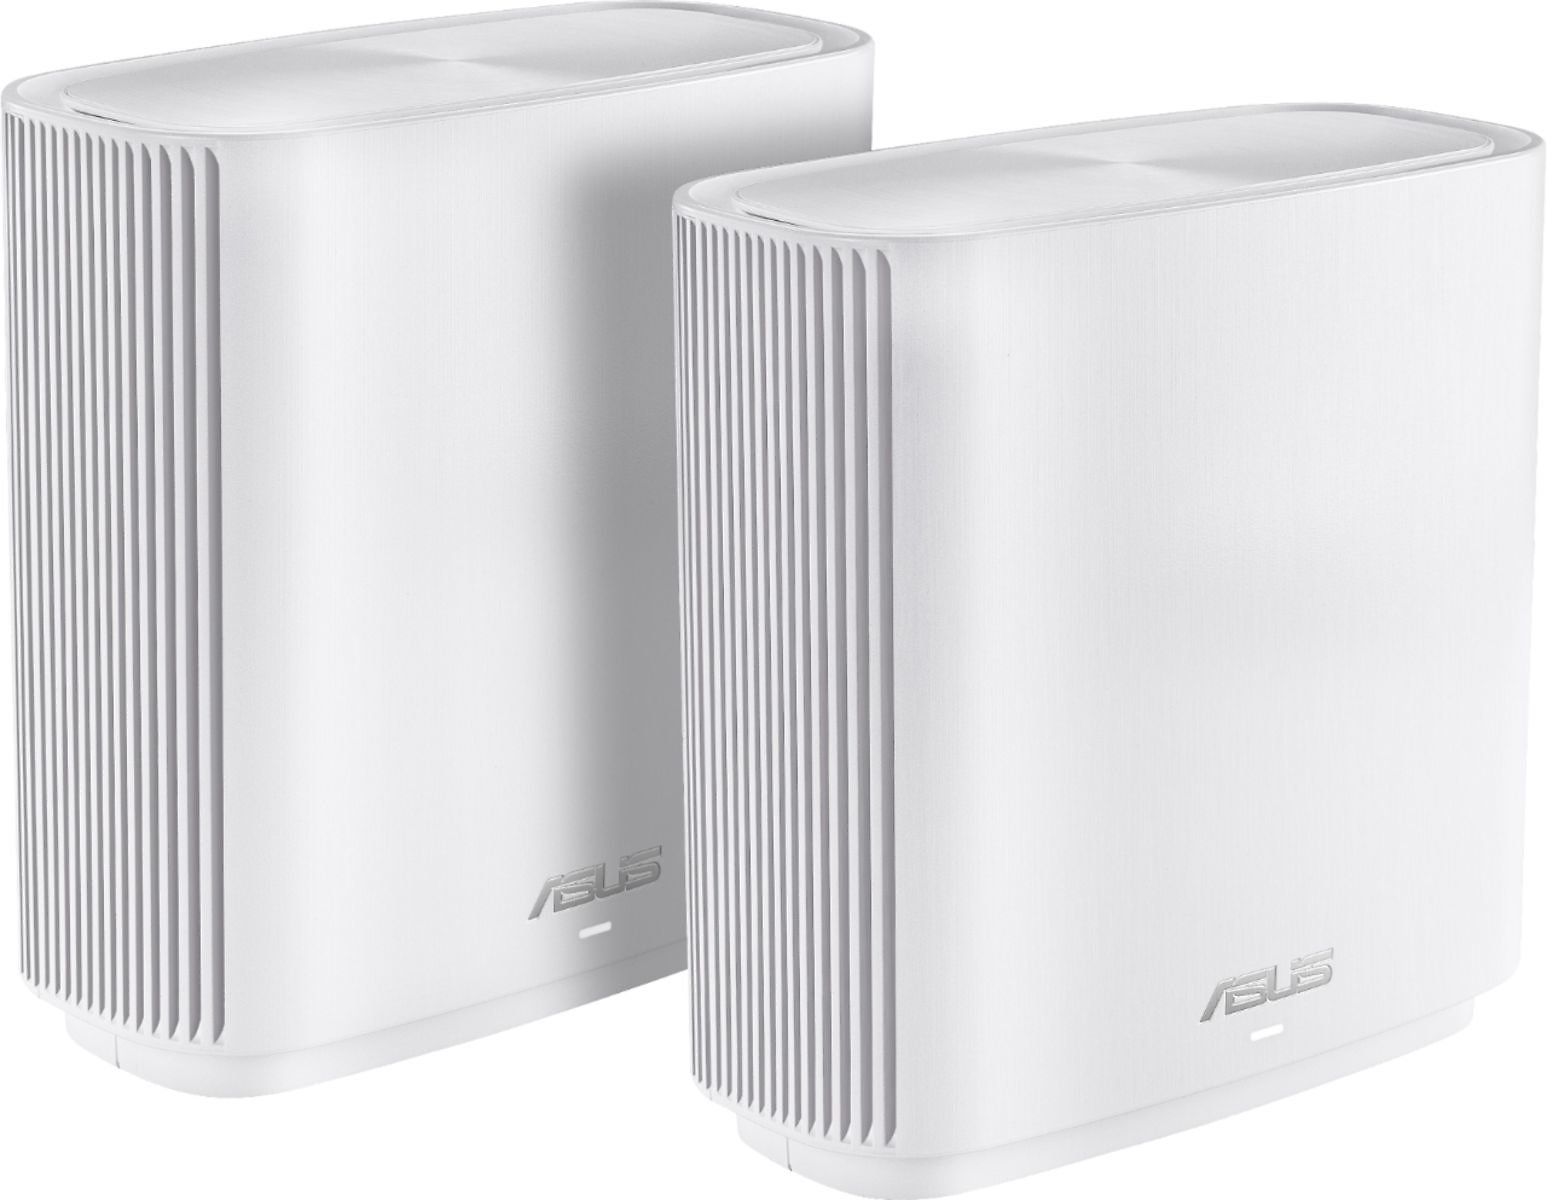 2-Pack ASUS ZenWiFi AC Tri-Band Mesh Wi-Fi Router